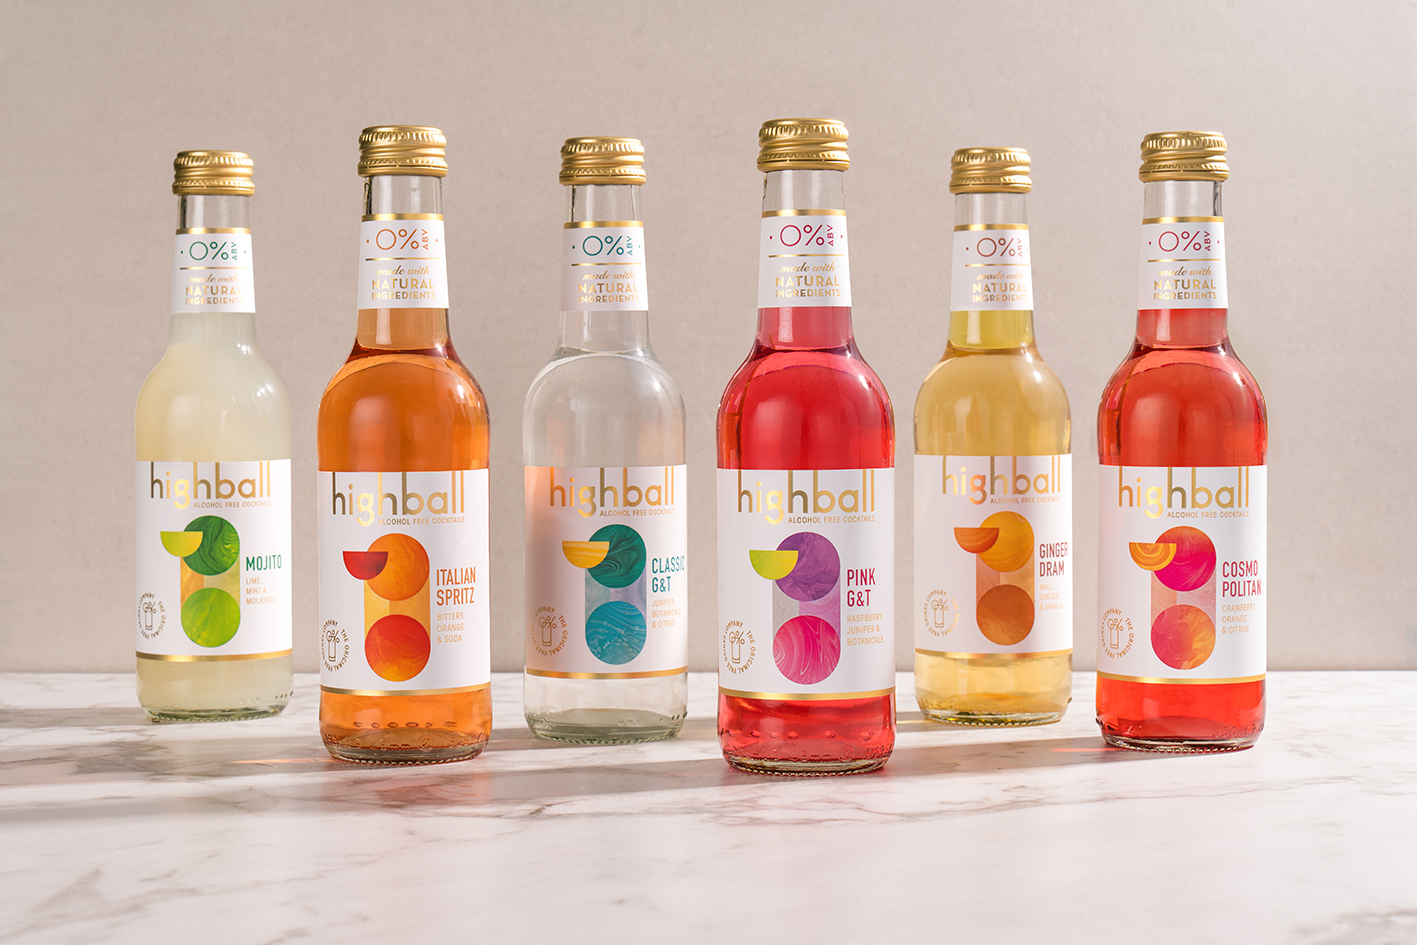 Highball Alcohol-Free Cocktails Served with Branding by Path